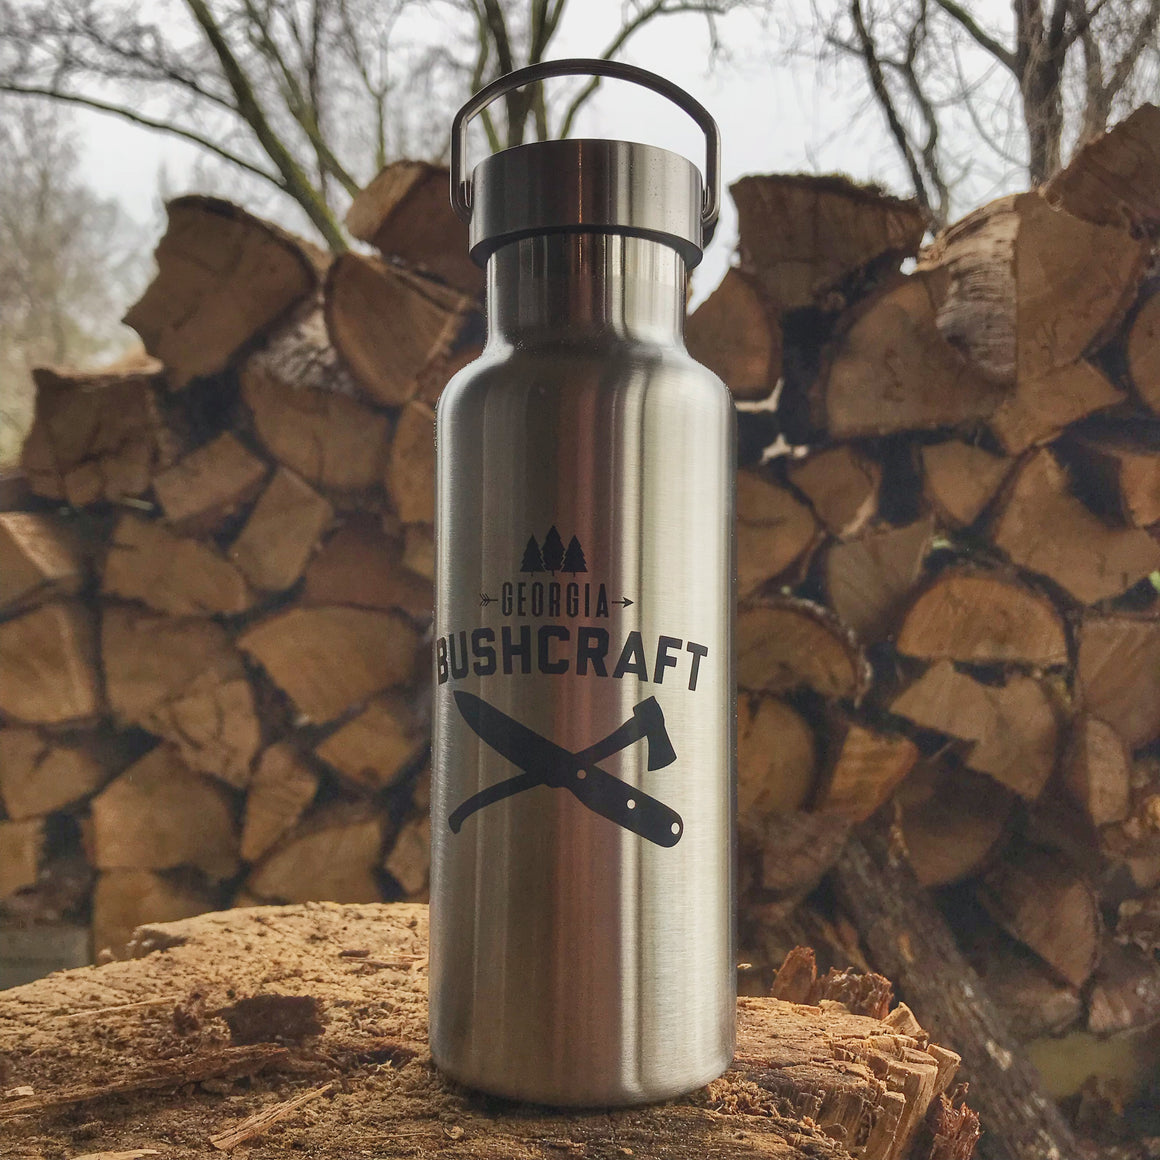 Georgia Bushcraft 17oz Stainless Steel Water Bottle